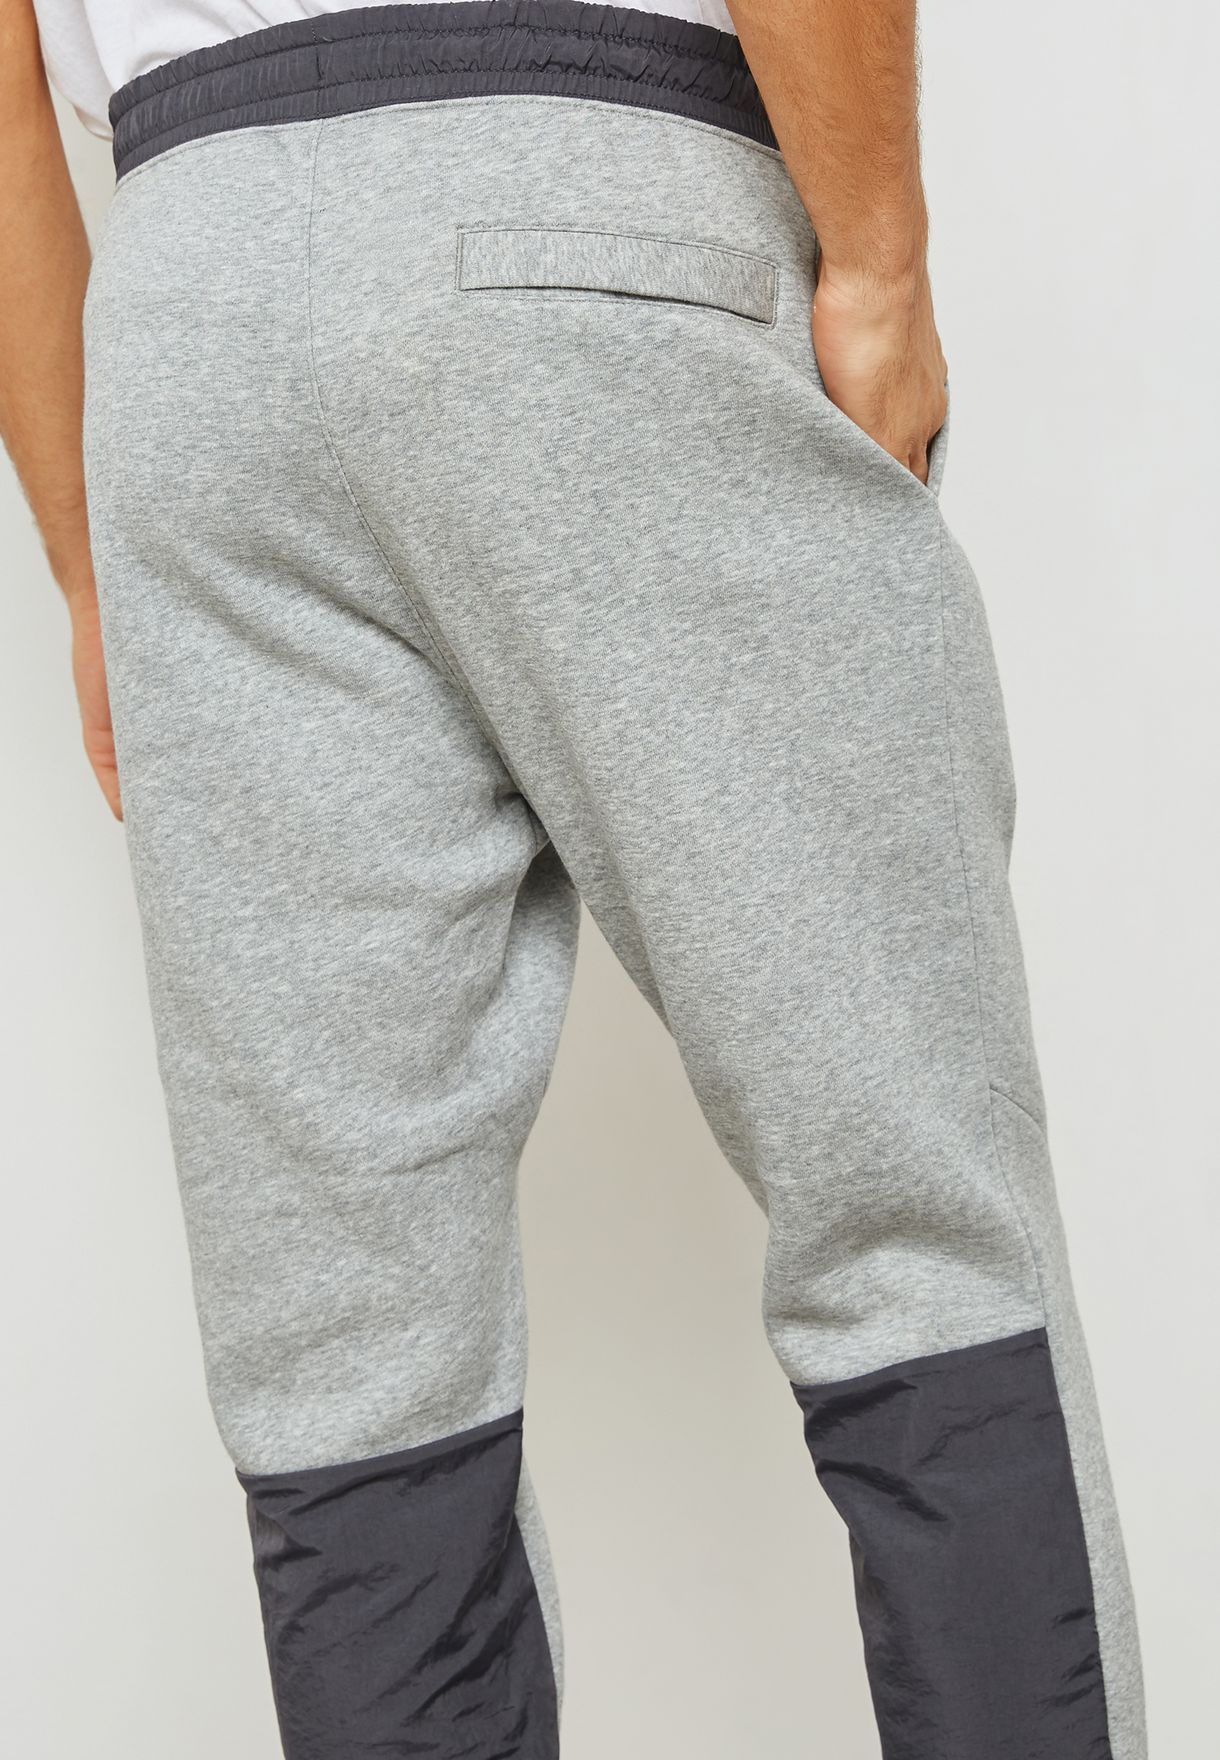 Just Do It Sweatpants